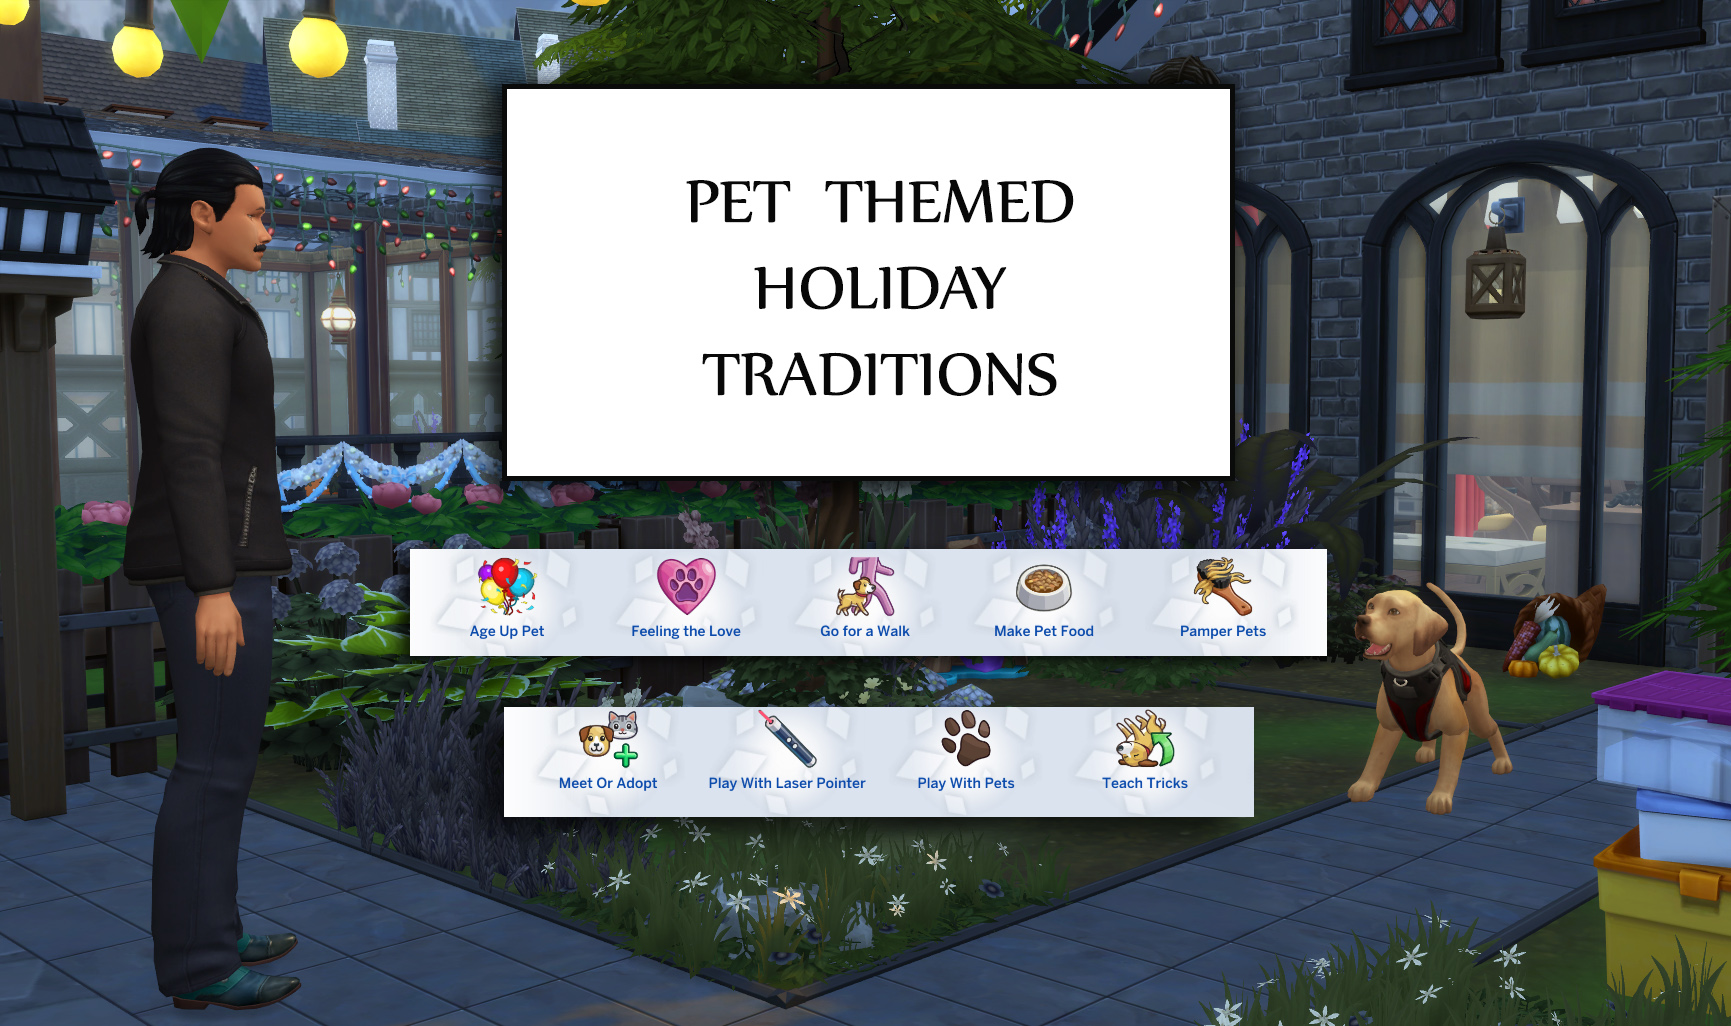 Mod The Sims - Pet Themed Holiday Traditions (Update 17th April 2019)